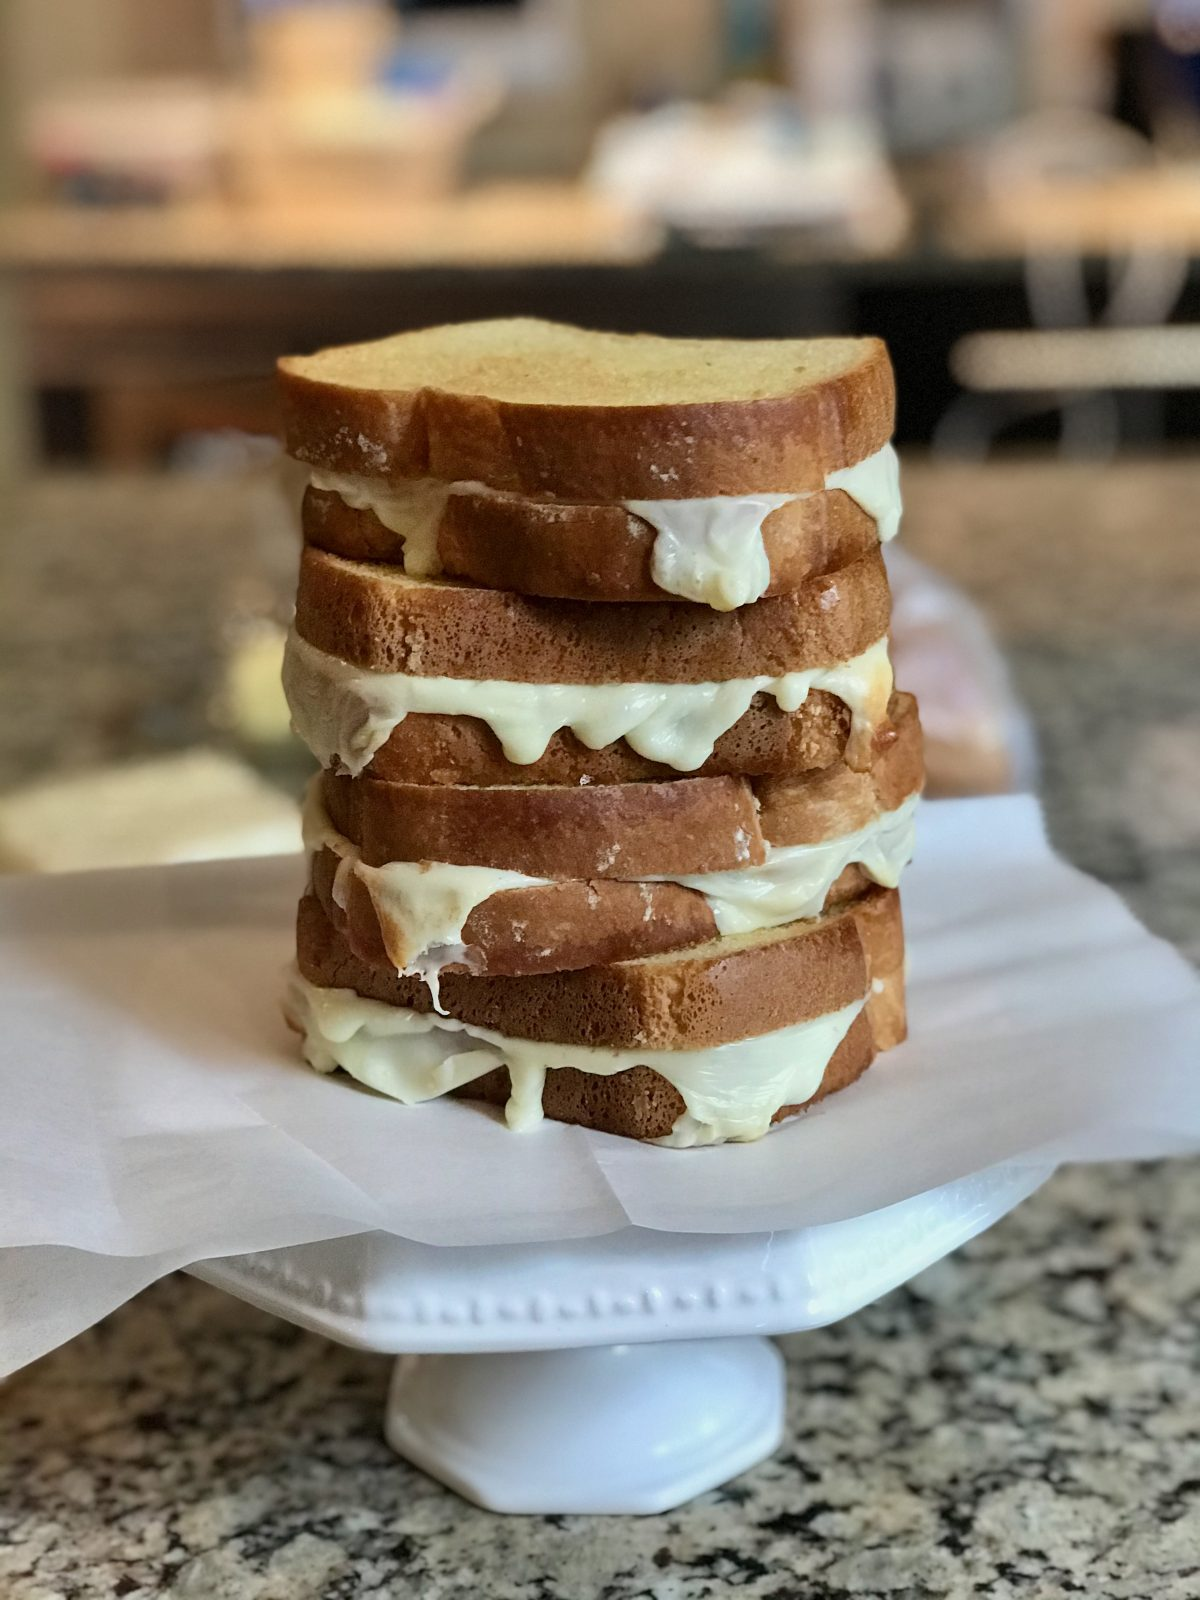 Stack of 4 golden brown grilled cheese sandwiches